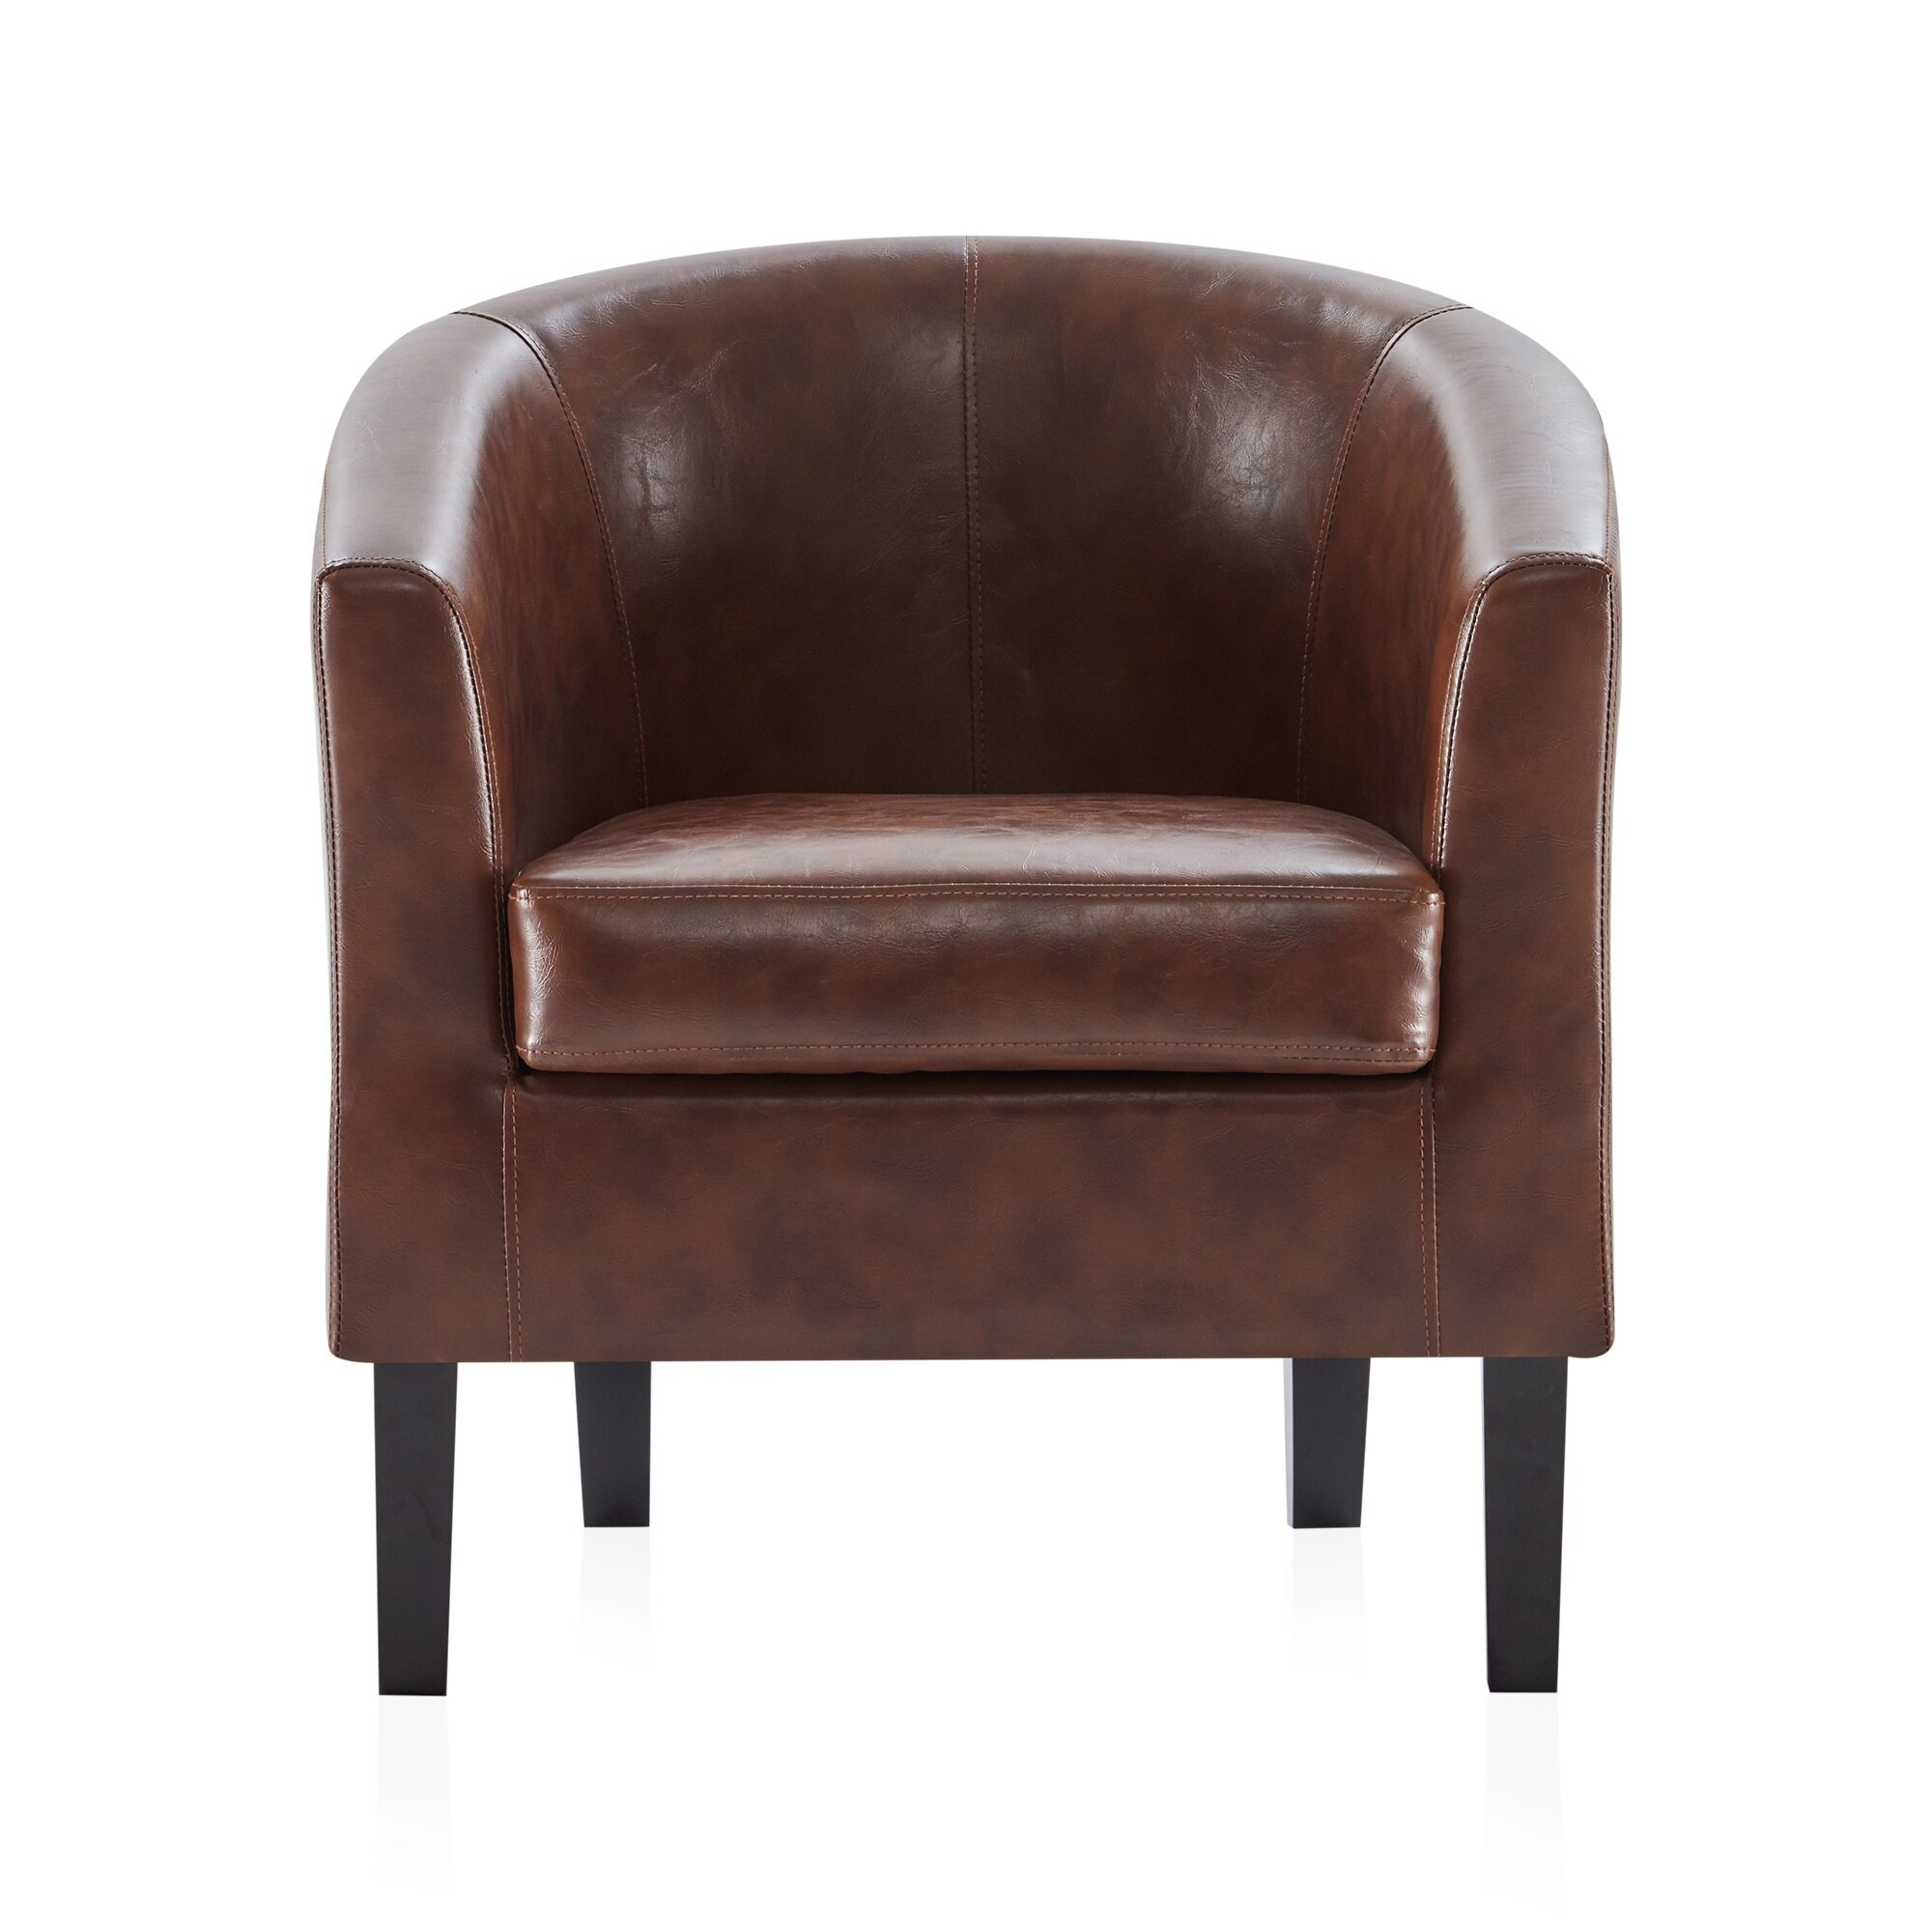 Featured Image of Ansar Faux Leather Barrel Chairs